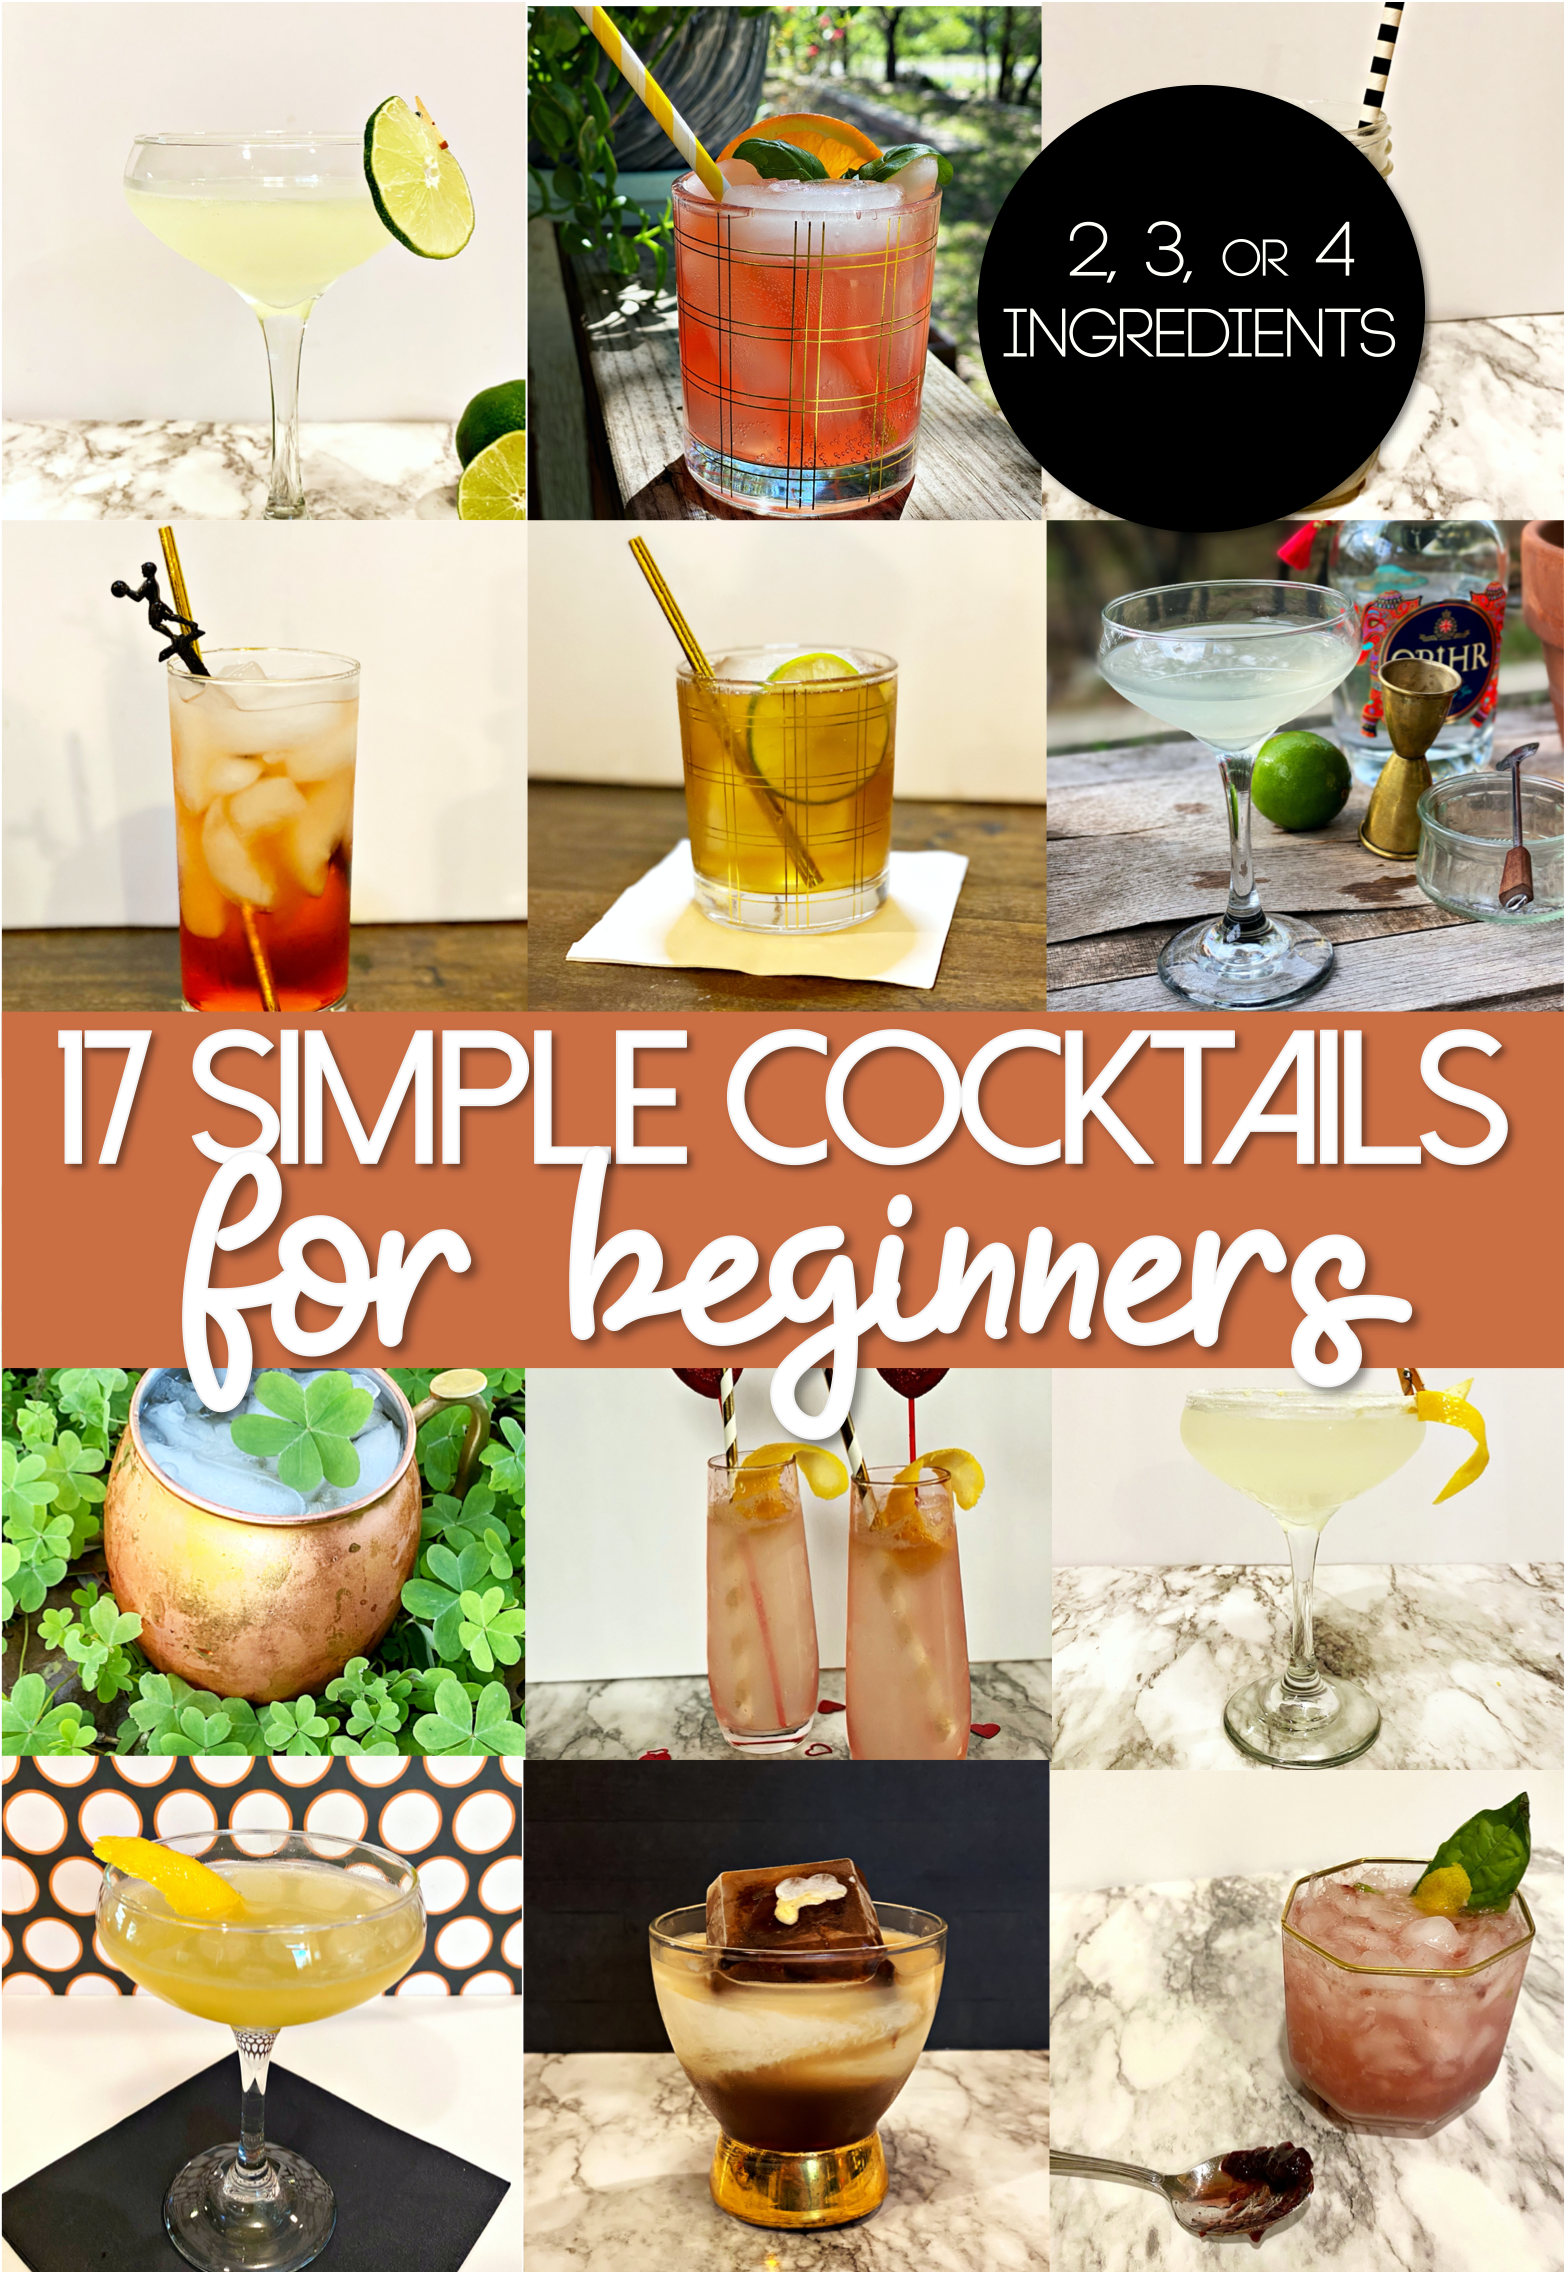 17 Simple Cocktail Recipes for Beginners | Easy Cocktails to Make at Home